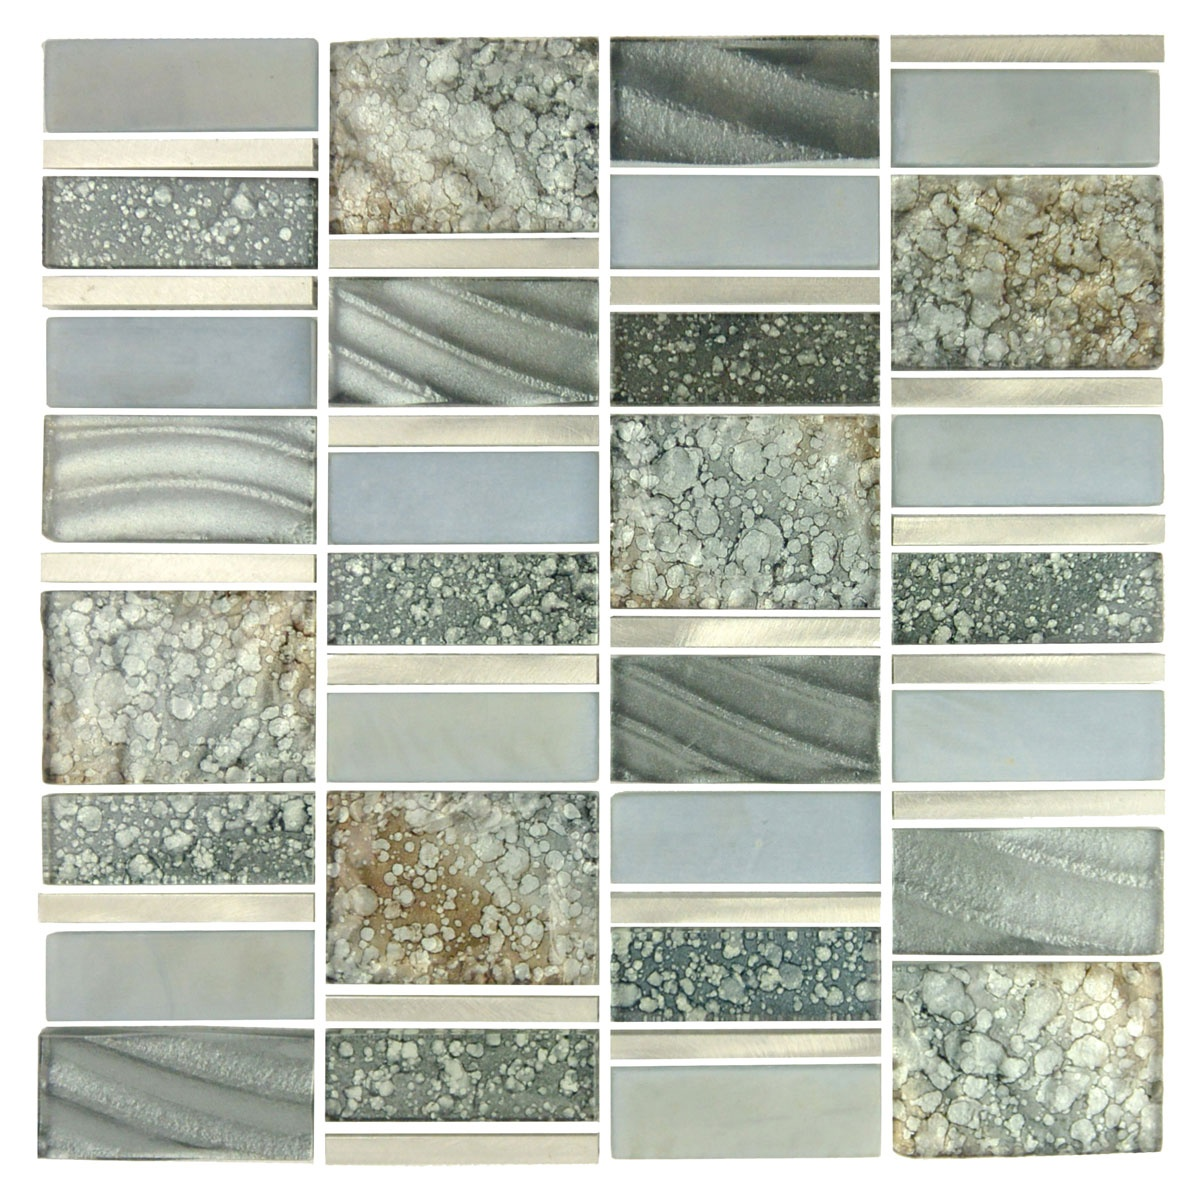 Abolos- Imperial Random Sized Glass and Aluminum Kitchen Wall, Bathroom Backsplash Mosaic Tile in Silver Sea (5sqft, 5pc Box)